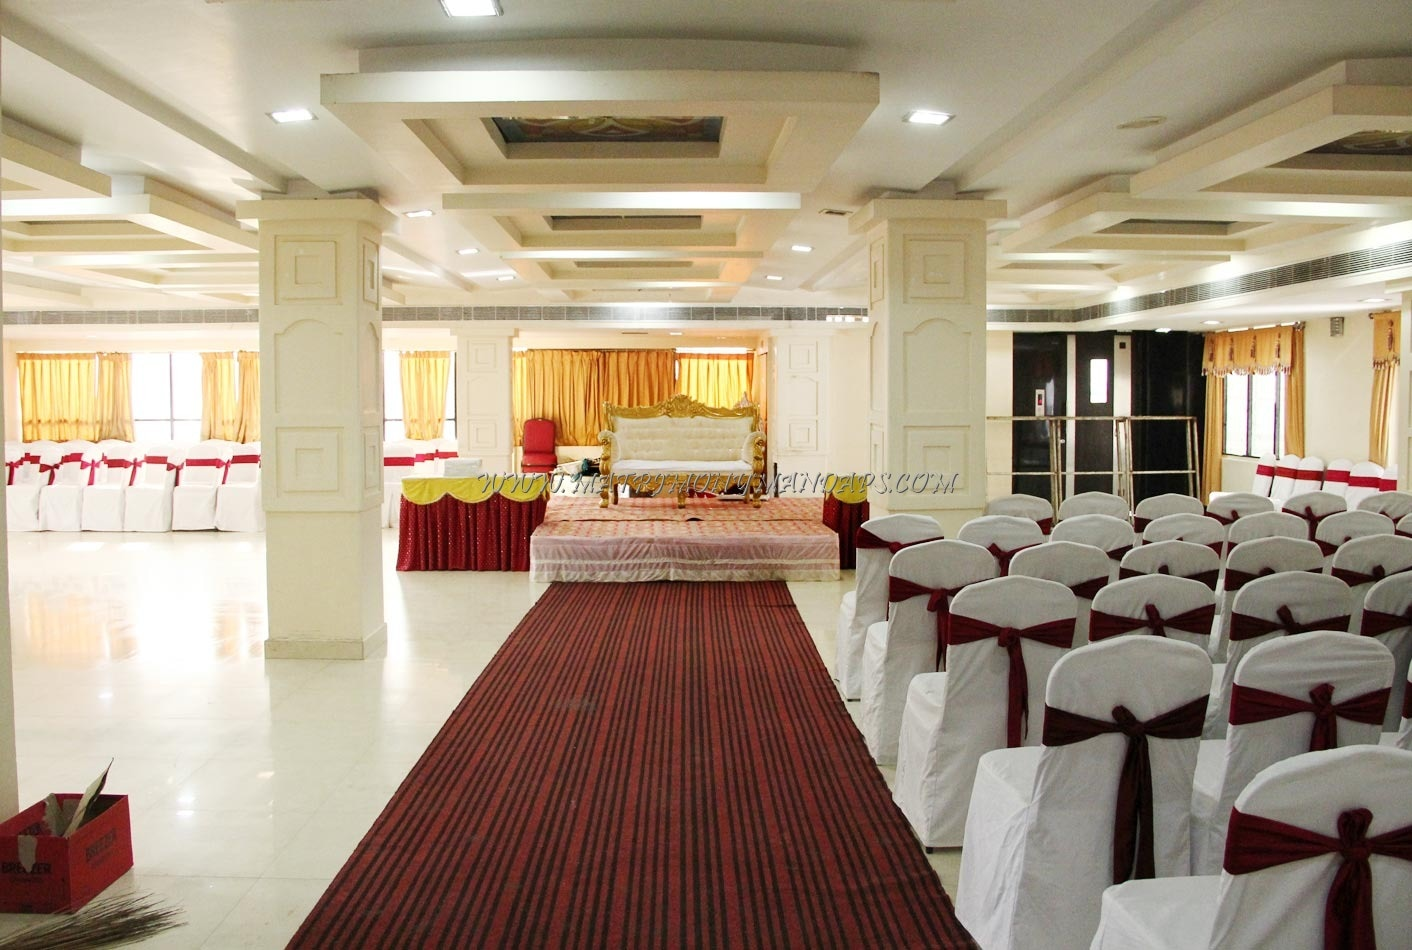 Find the availability of the Vennela Banquet Hall (A/C) in Attapur, Hyderabad and avail special offers